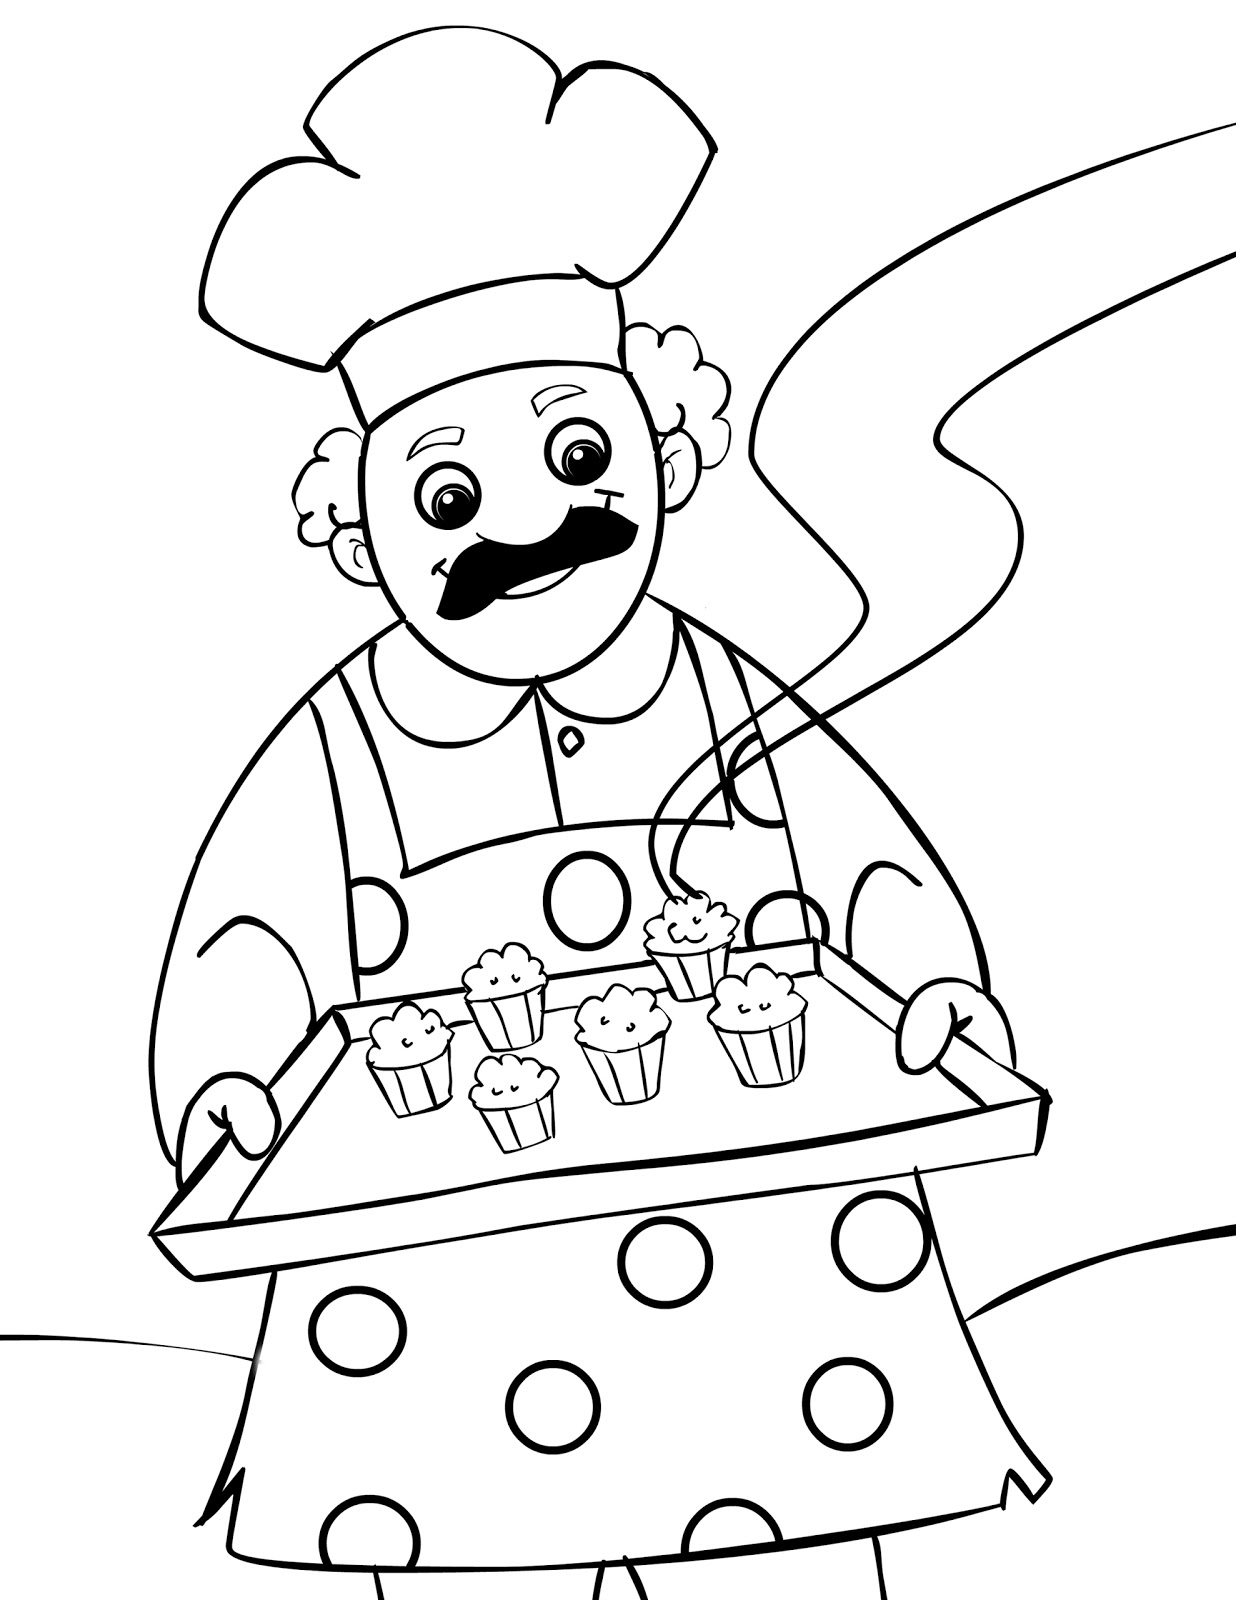 Muffin Man Nursery Rhyme Coloring Pages